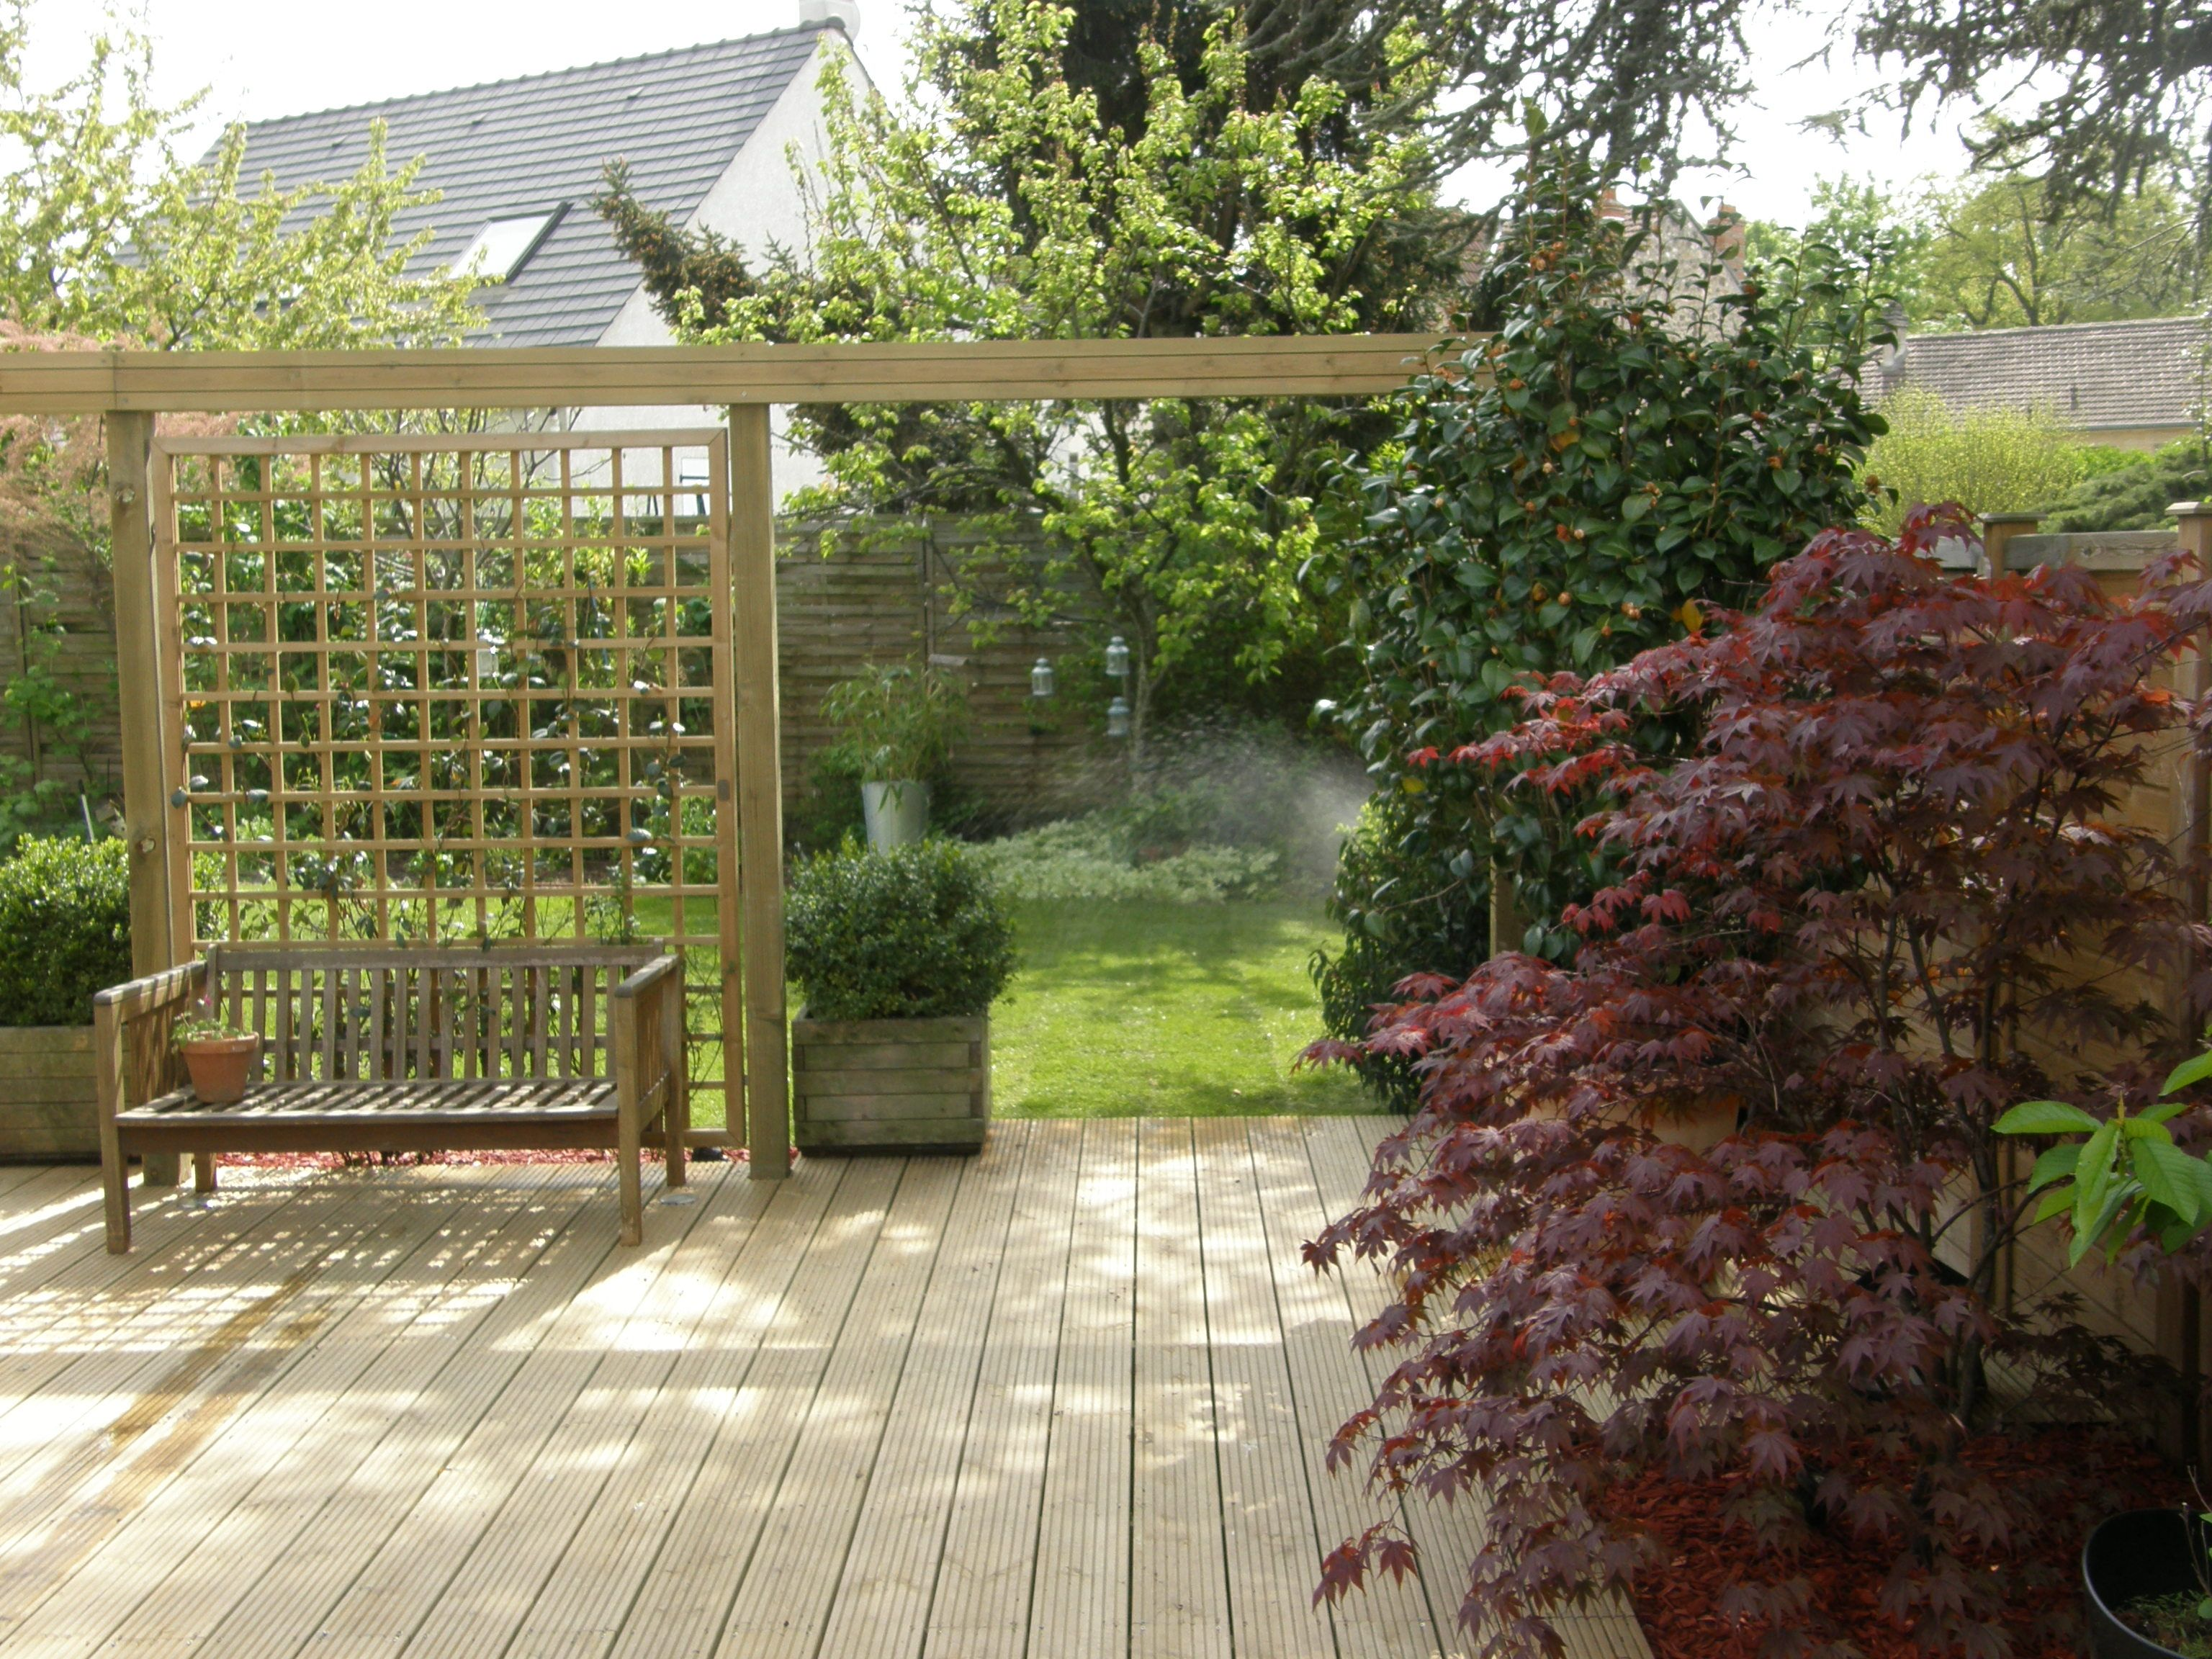 trellis used as a screen divide areas off or create intimate